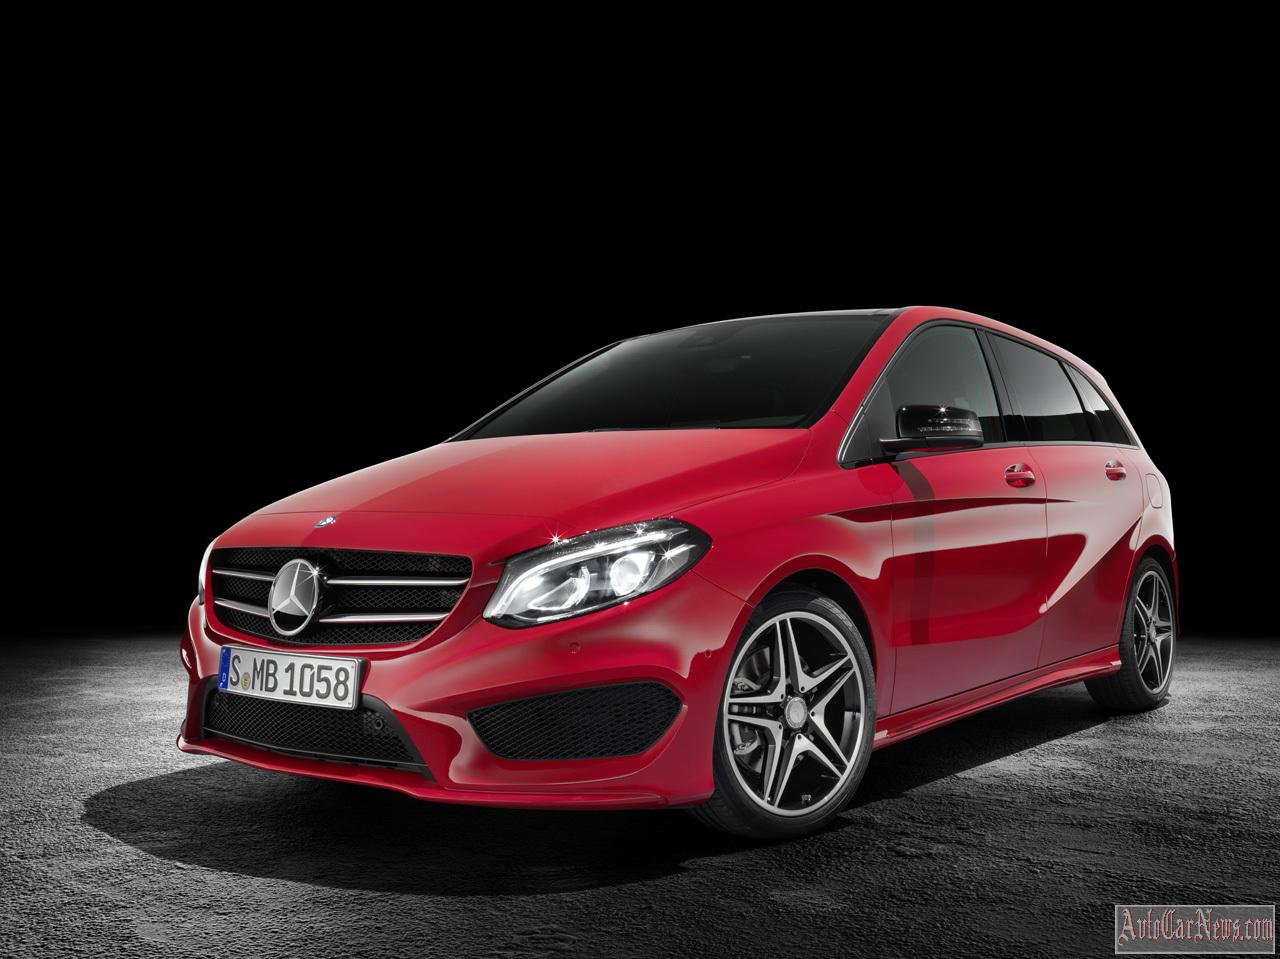 2015 Mercedes-Benz B-Class Photos